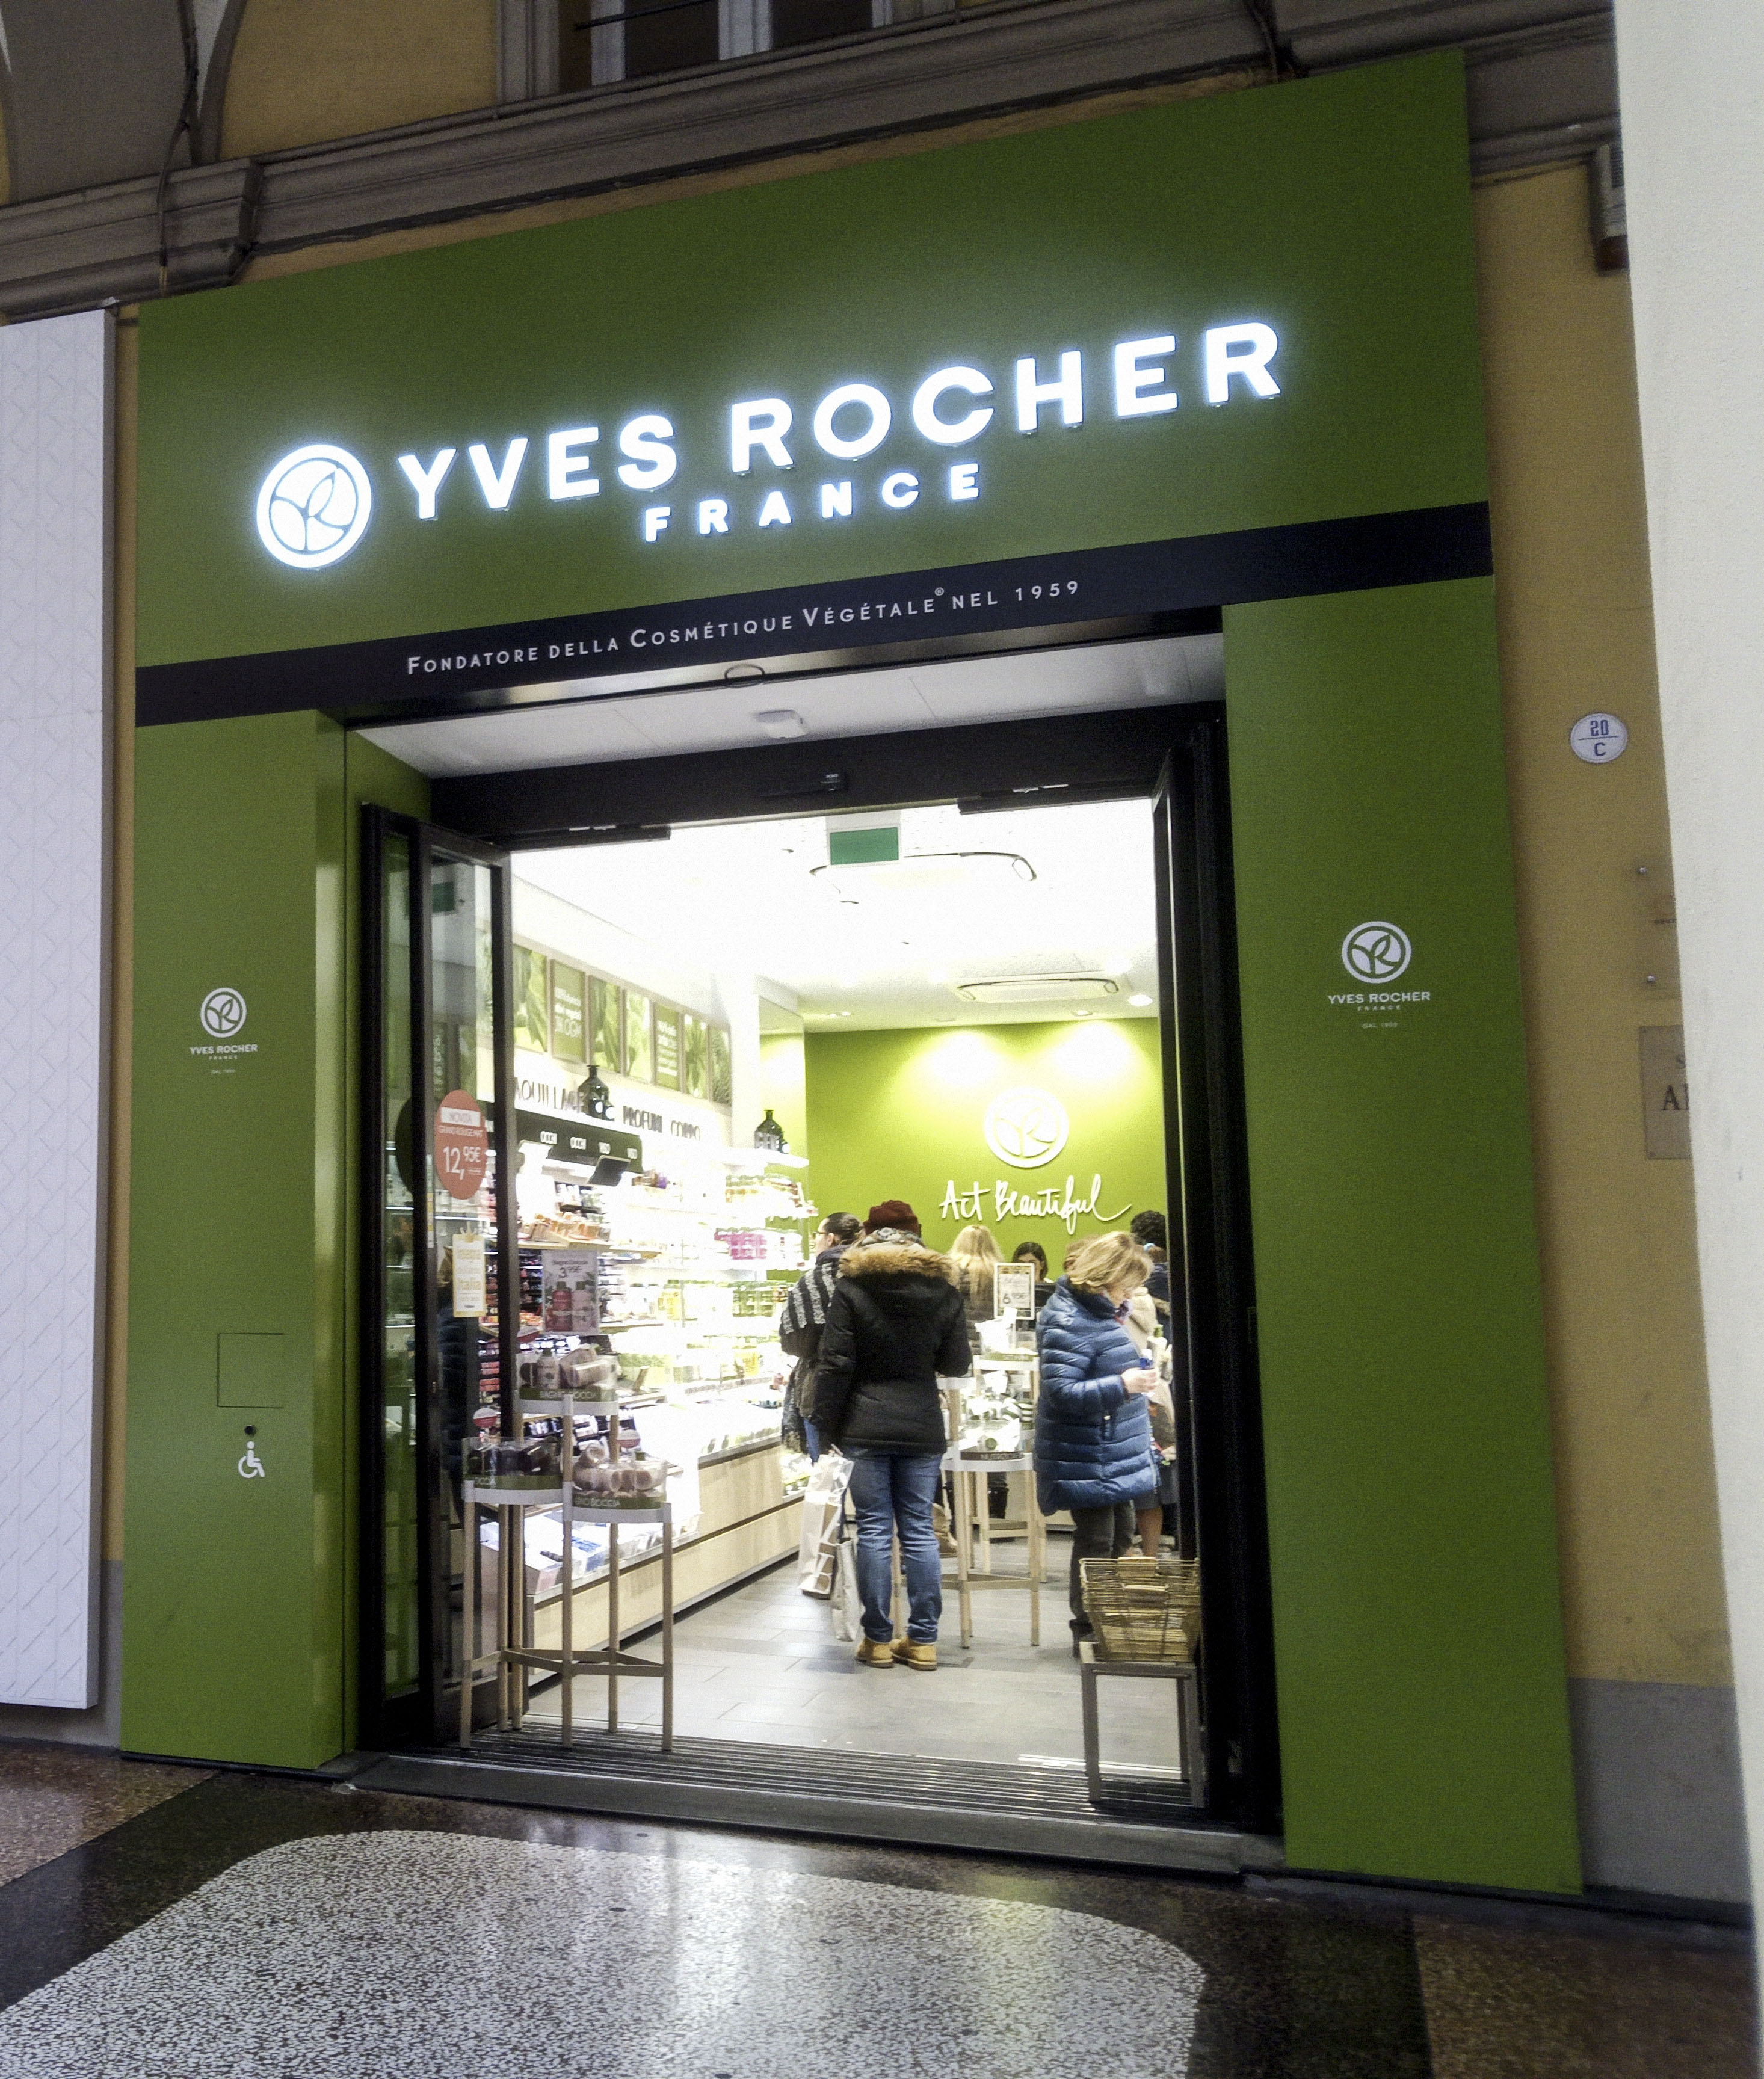 YVES ROCHER – FRANCE